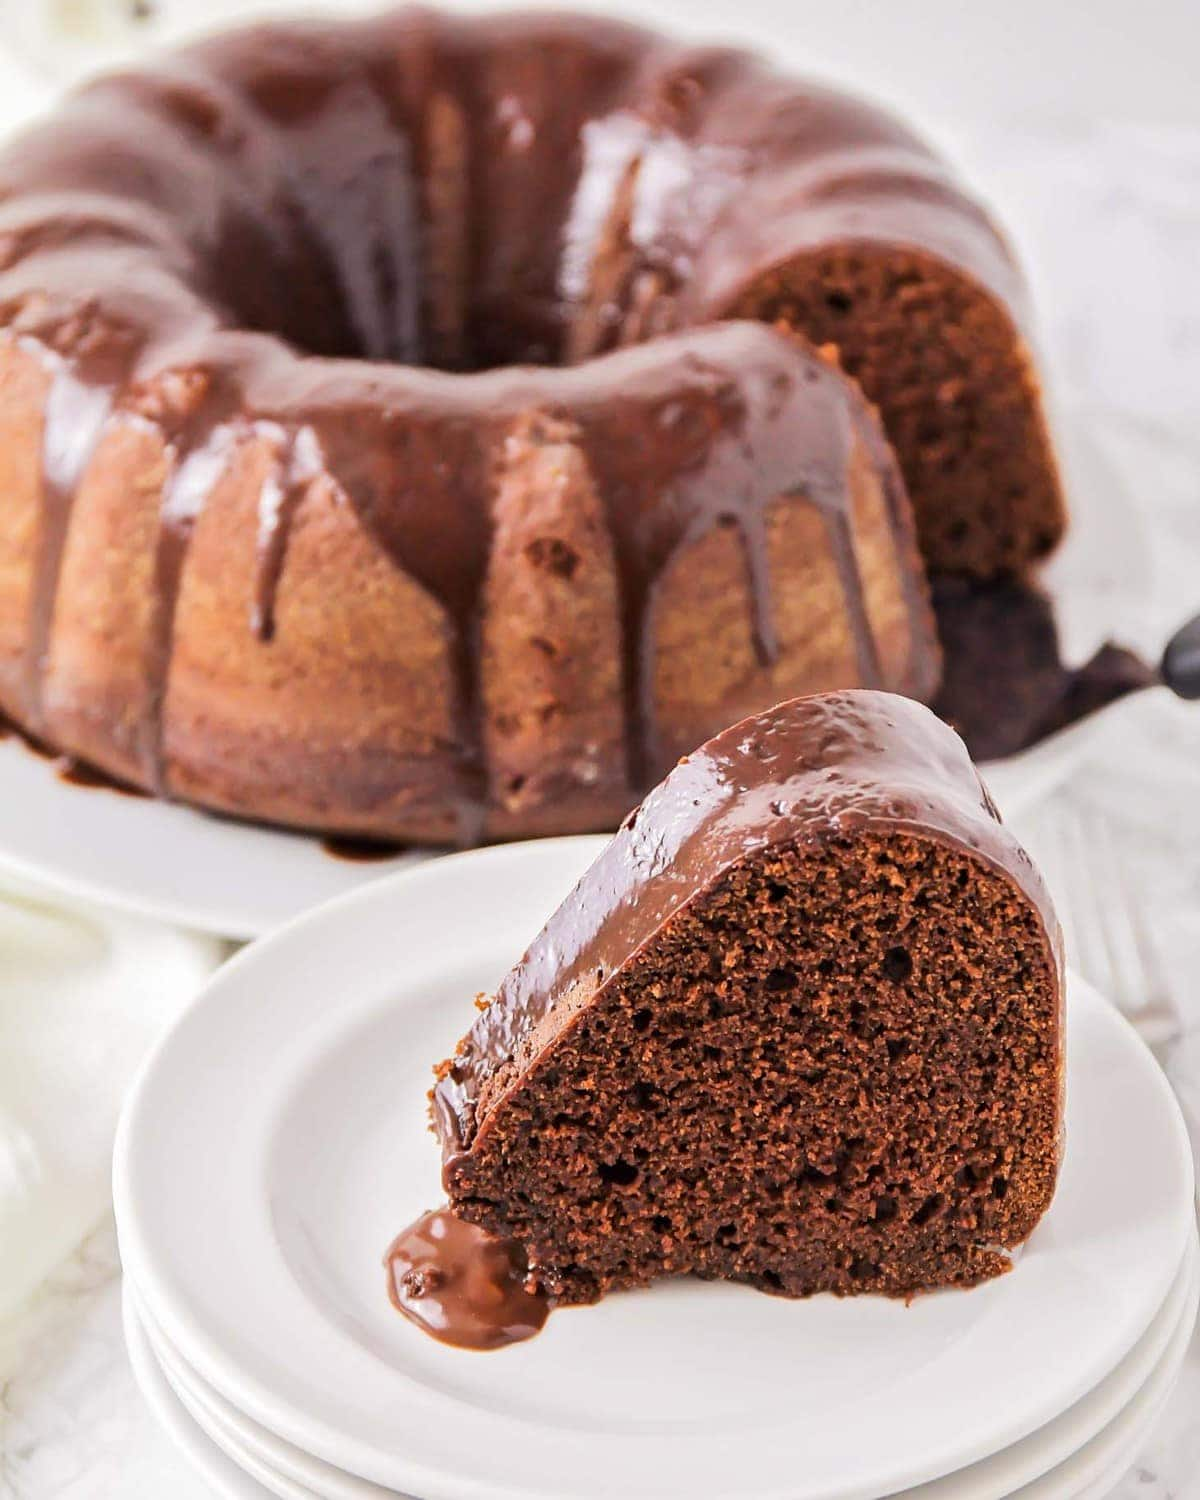 Moist chocolate bundt cake on a plate